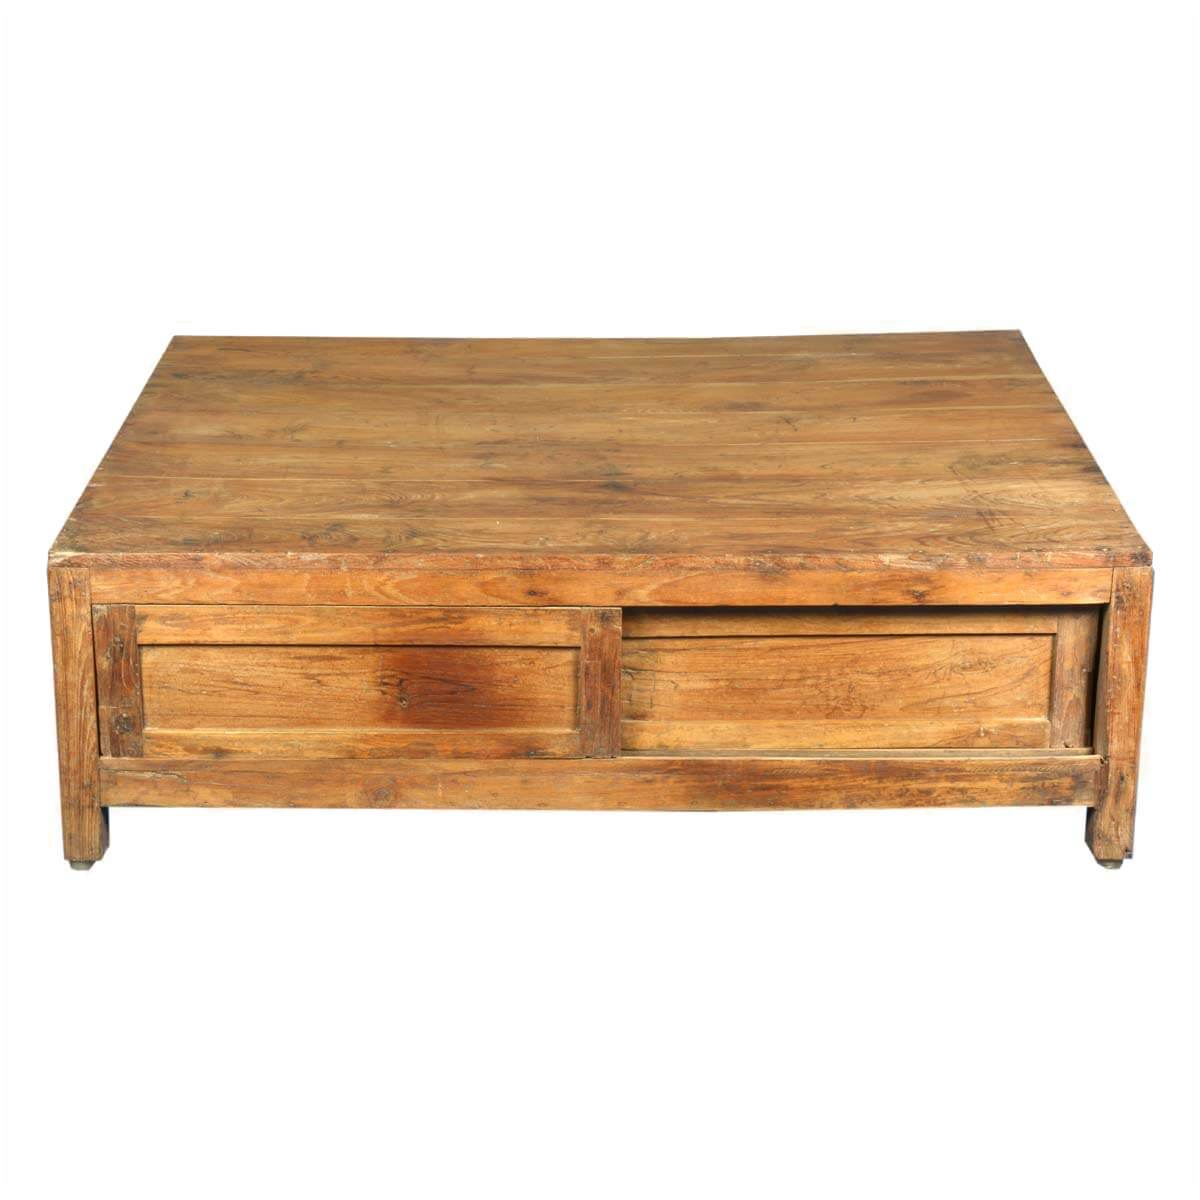 Handmade solid teak wood large coffee table with storage for Large wood coffee table